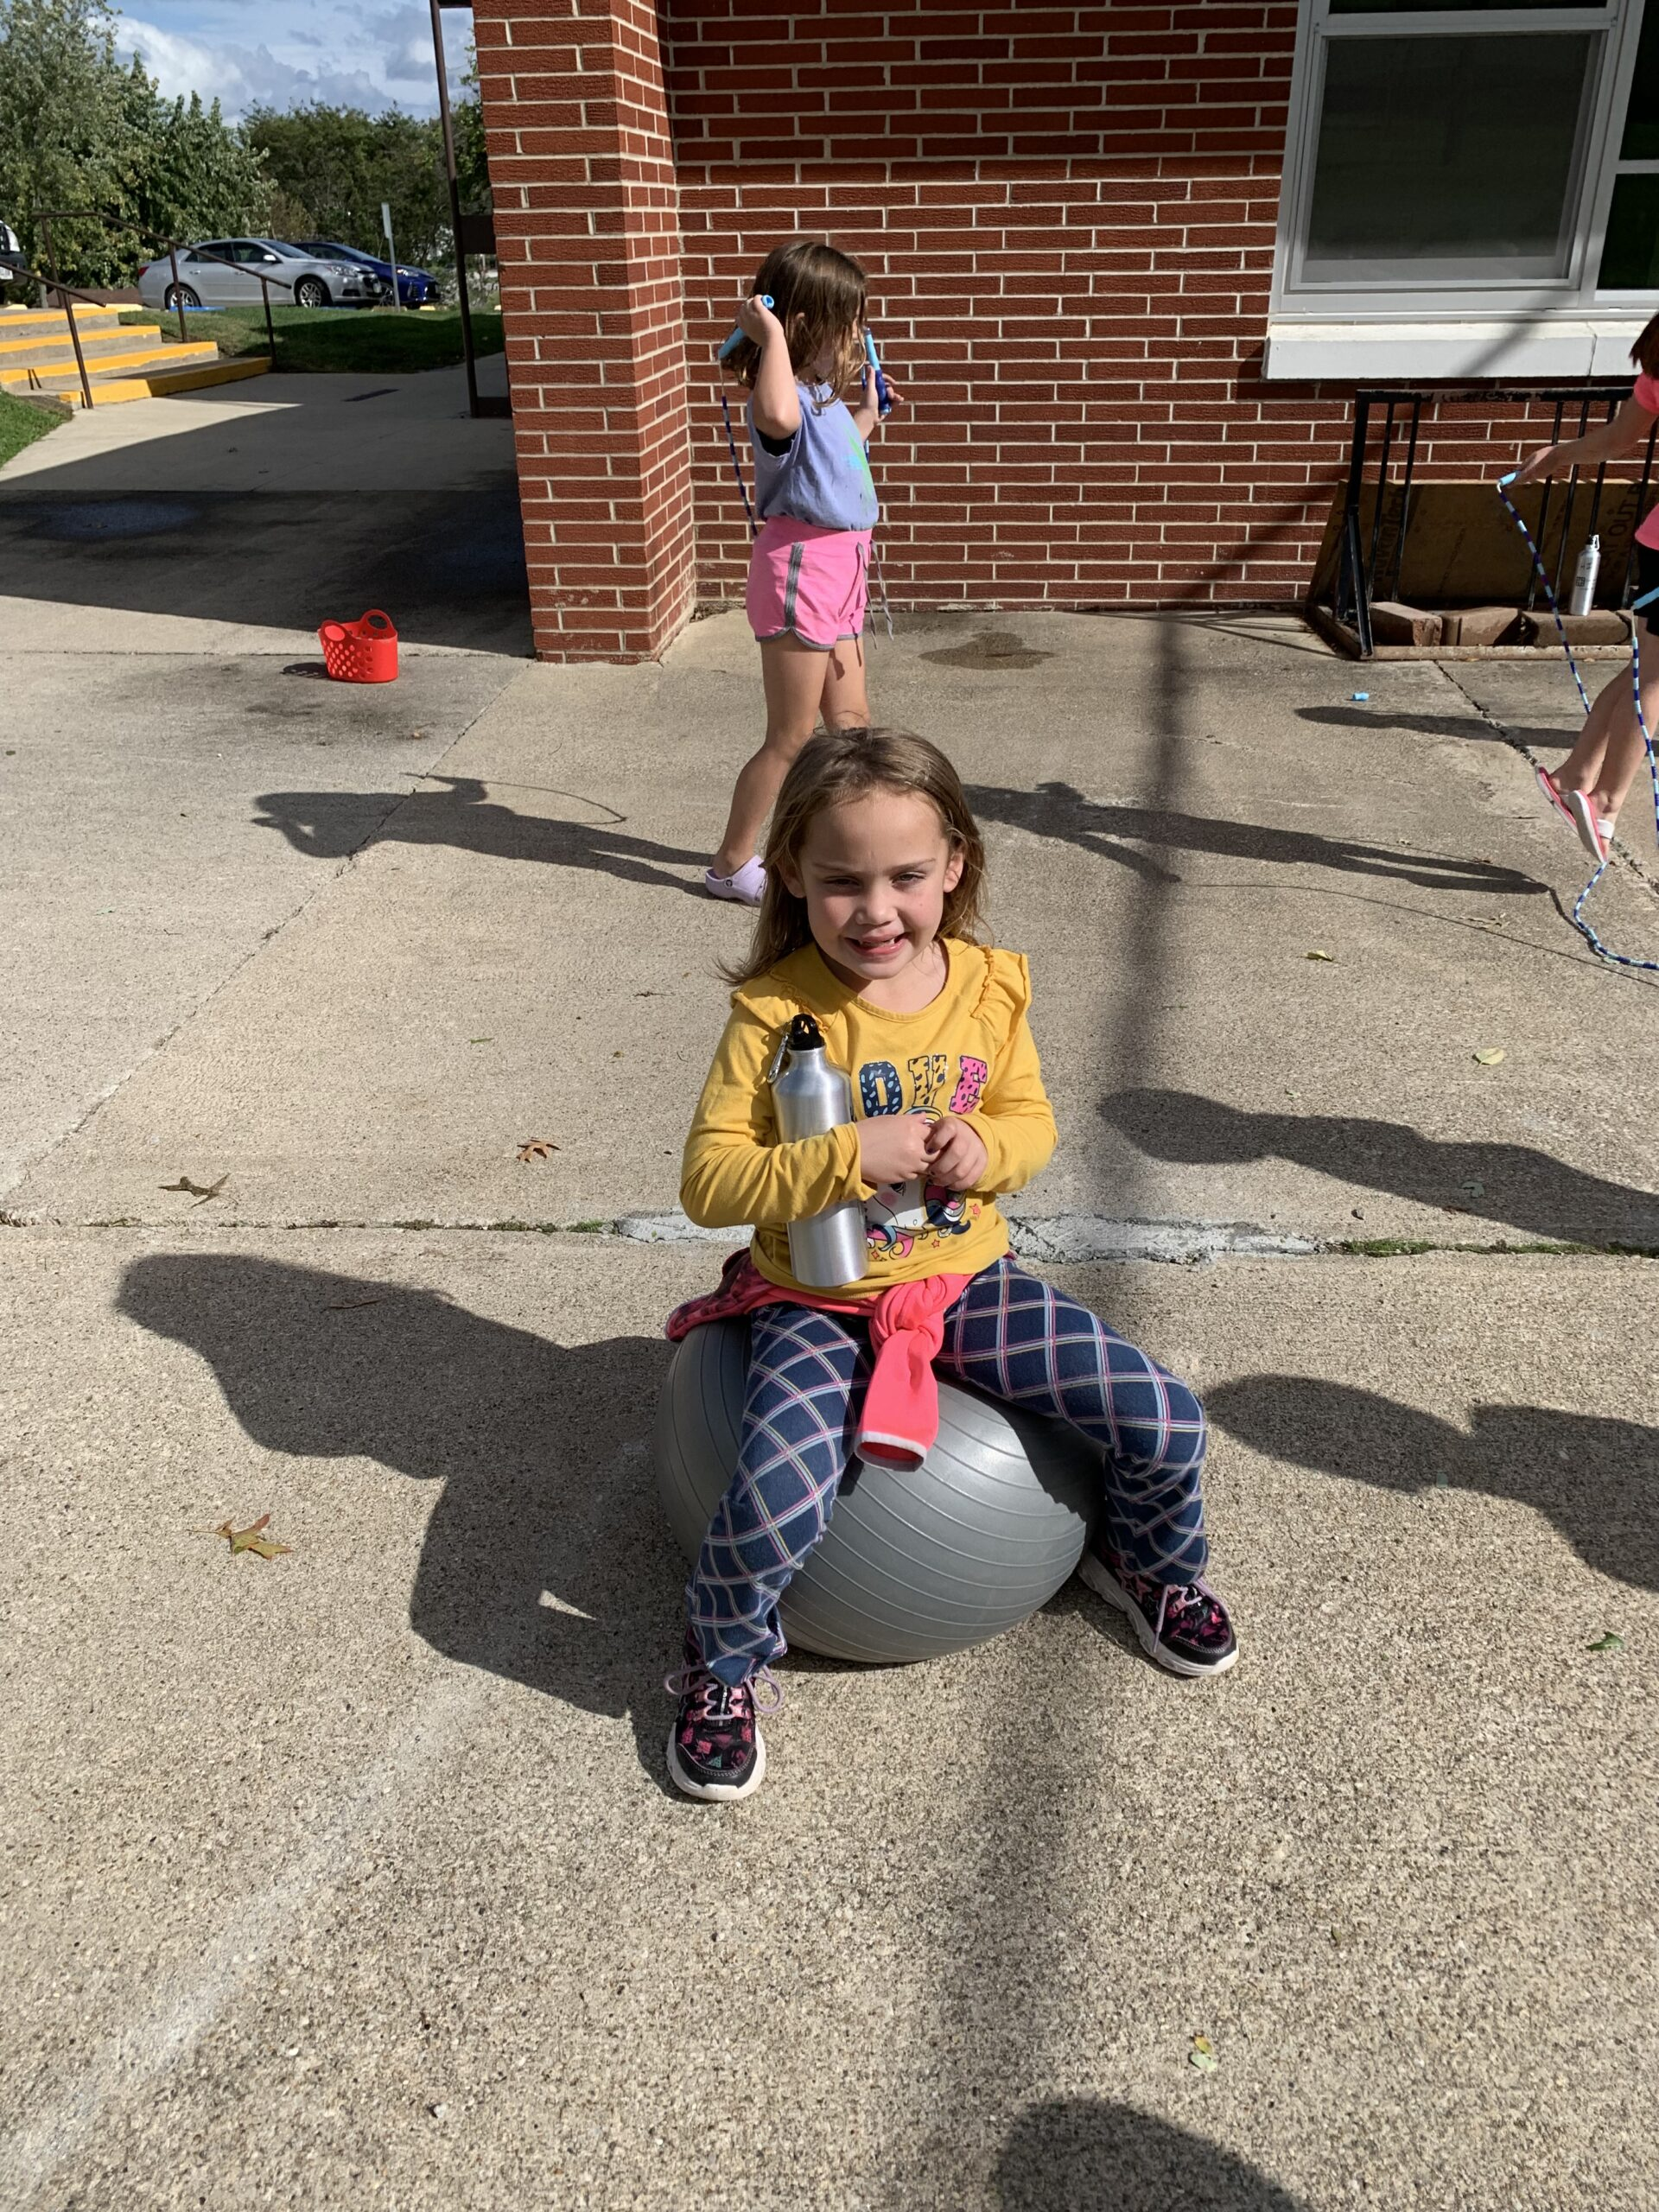 Two South Elementary Students enjoy a lemonade recess to celebrate RED Way behavior